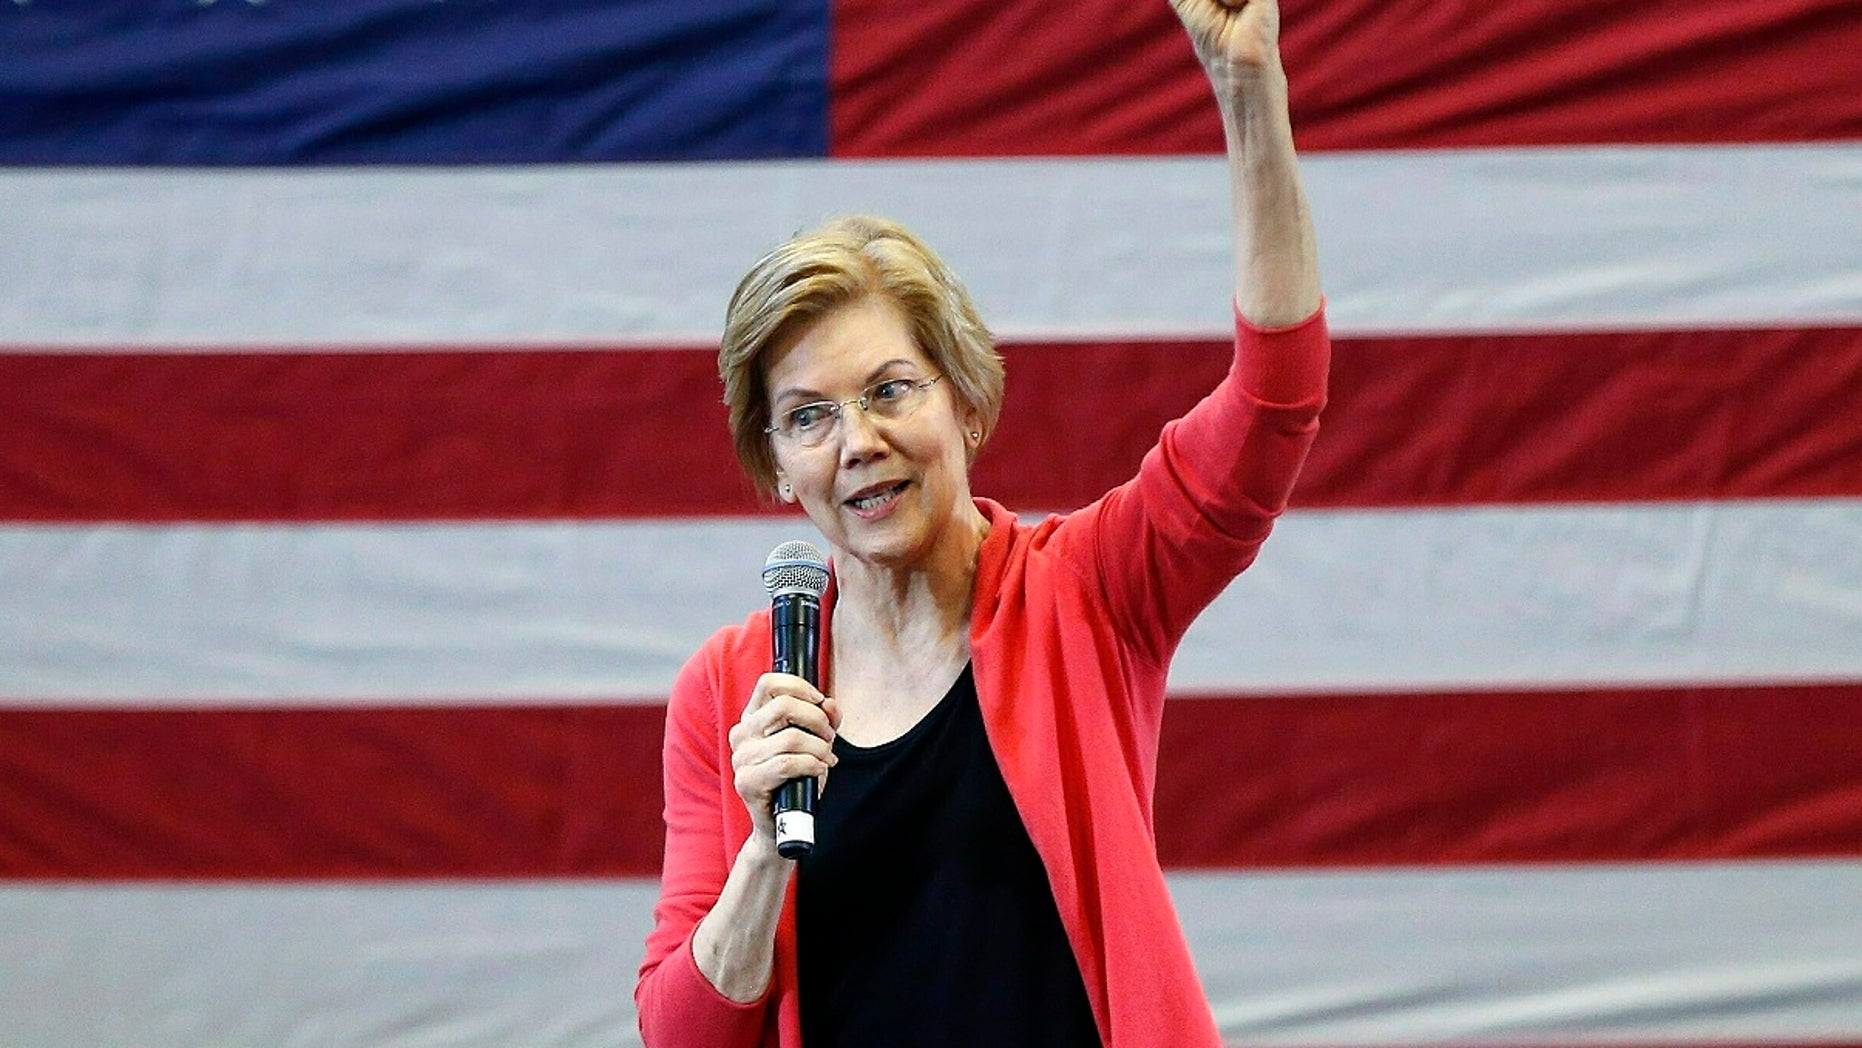 Sen. Elizabeth Warren, D-Mass., officially announced her 2020 presidential bid on Feb. 9.